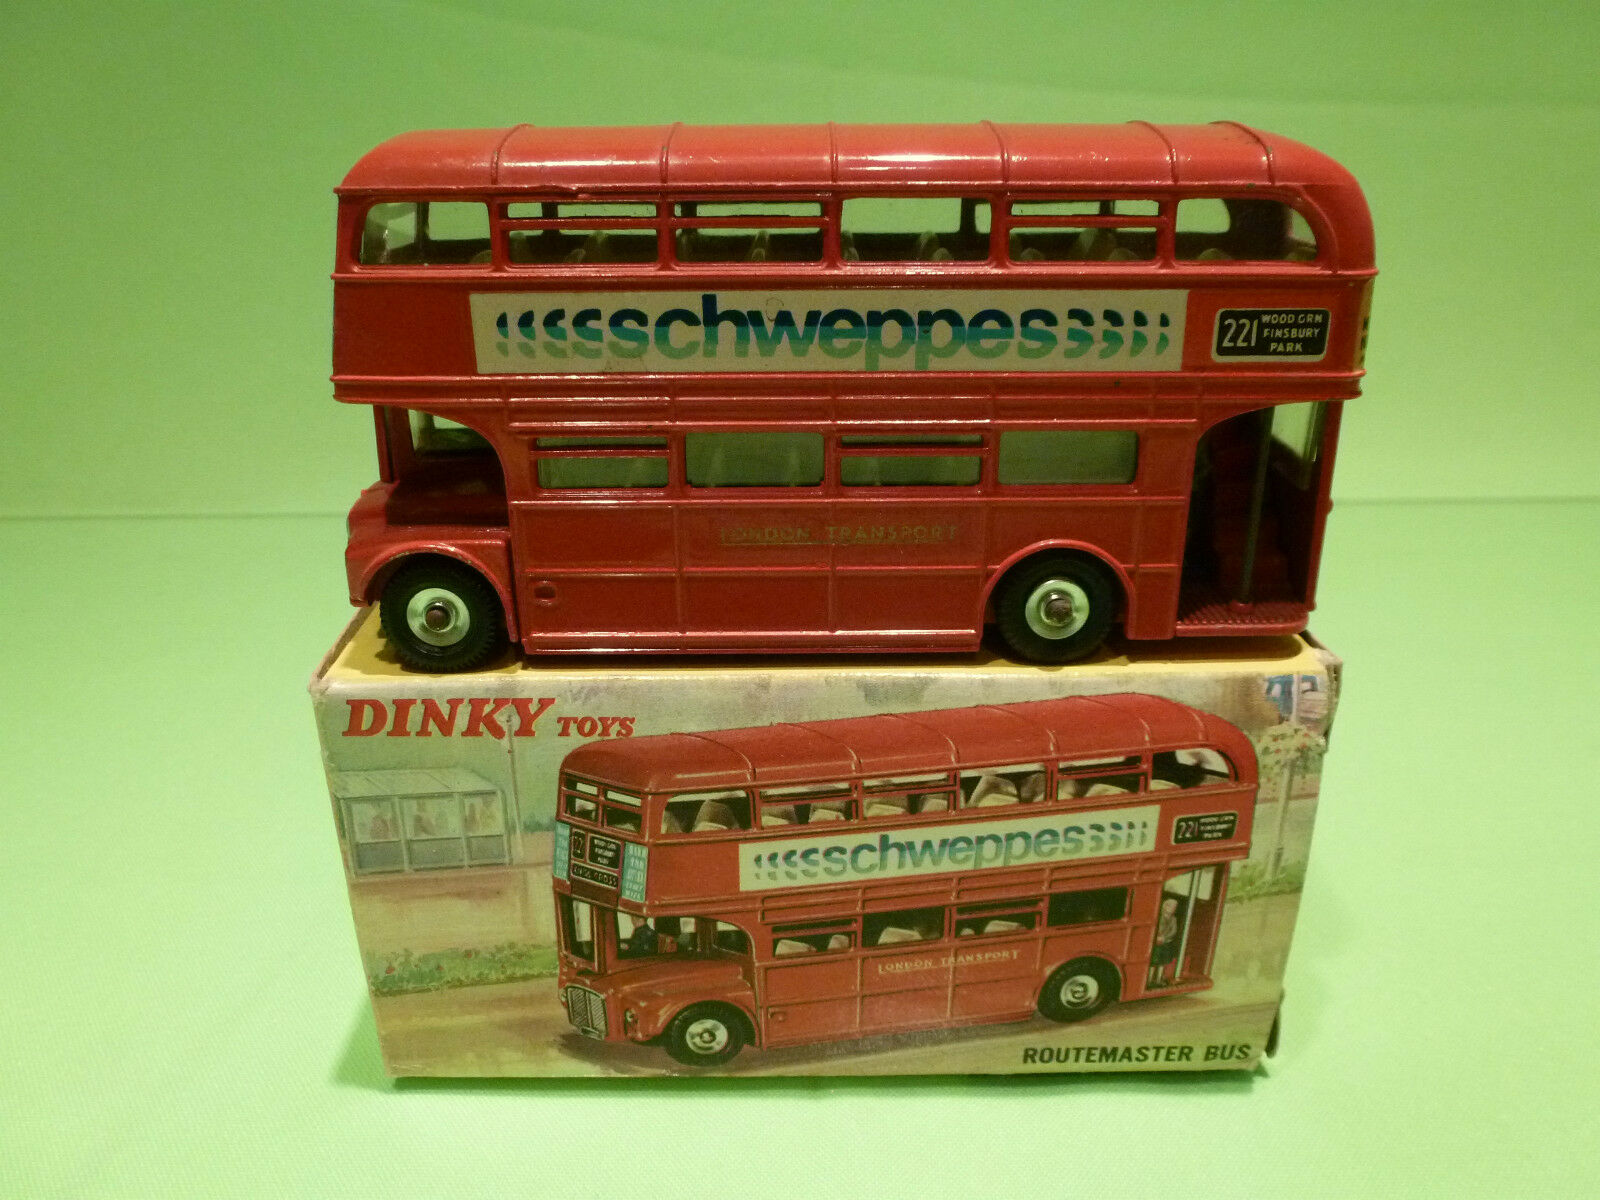 DINKY TOYS 289 ROUTEMASTER BUS - SCHWEPPES - NEAR MINT CONDITION IN BOX